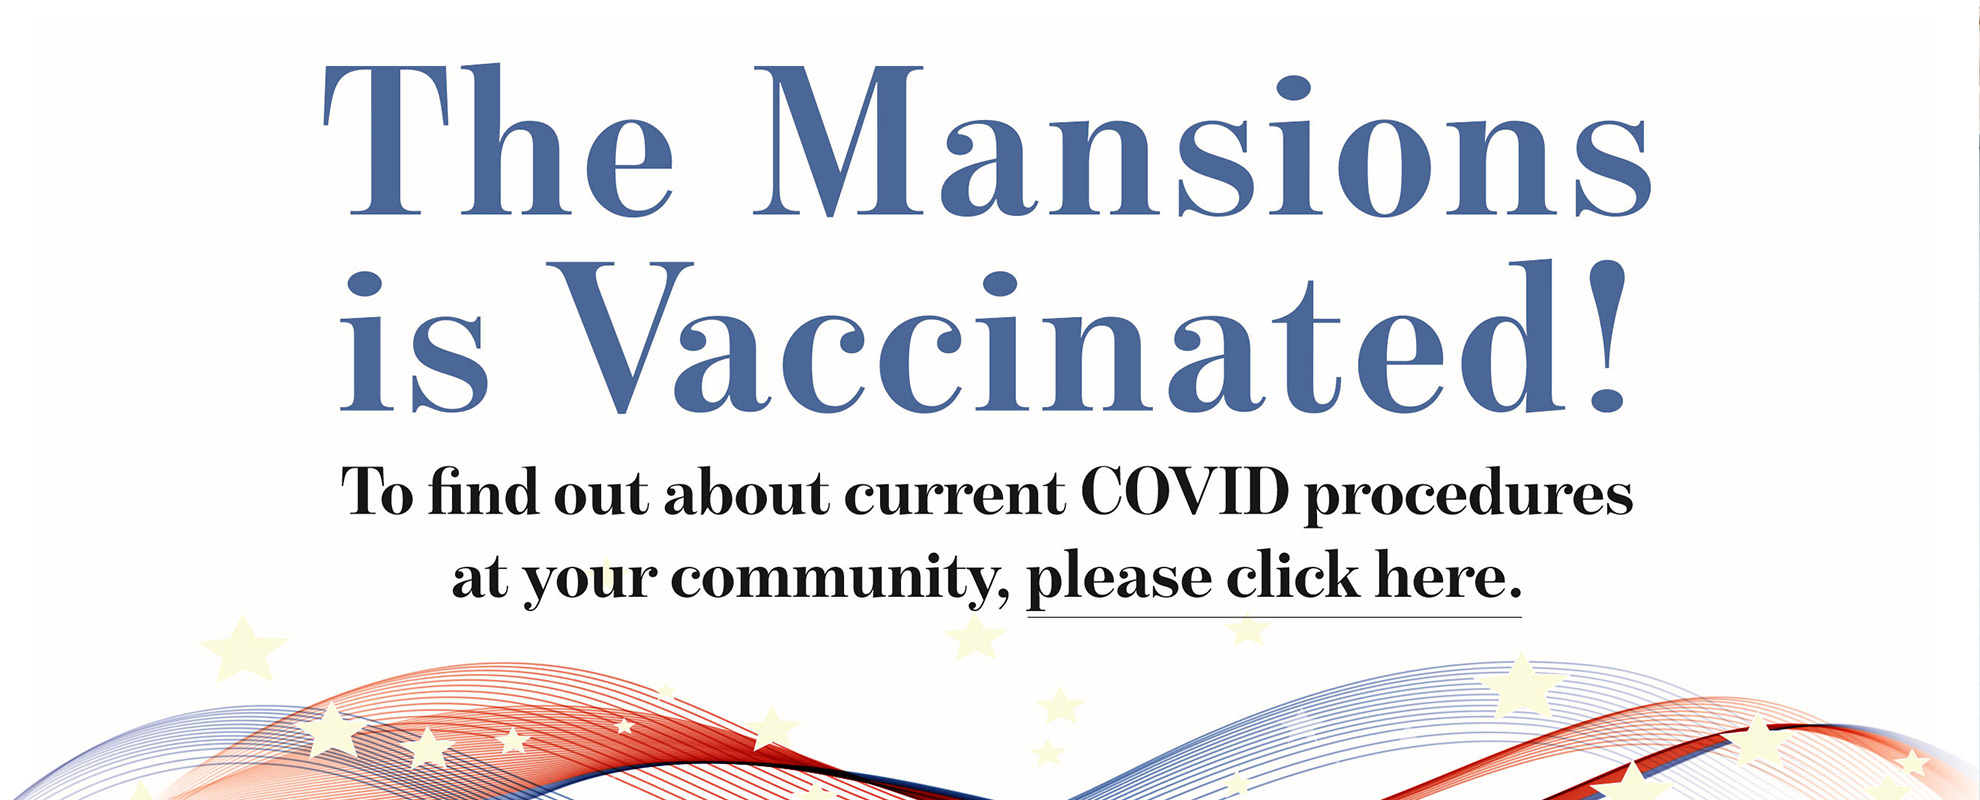 OK mansions is vaccinated carousel banner draft 2_1